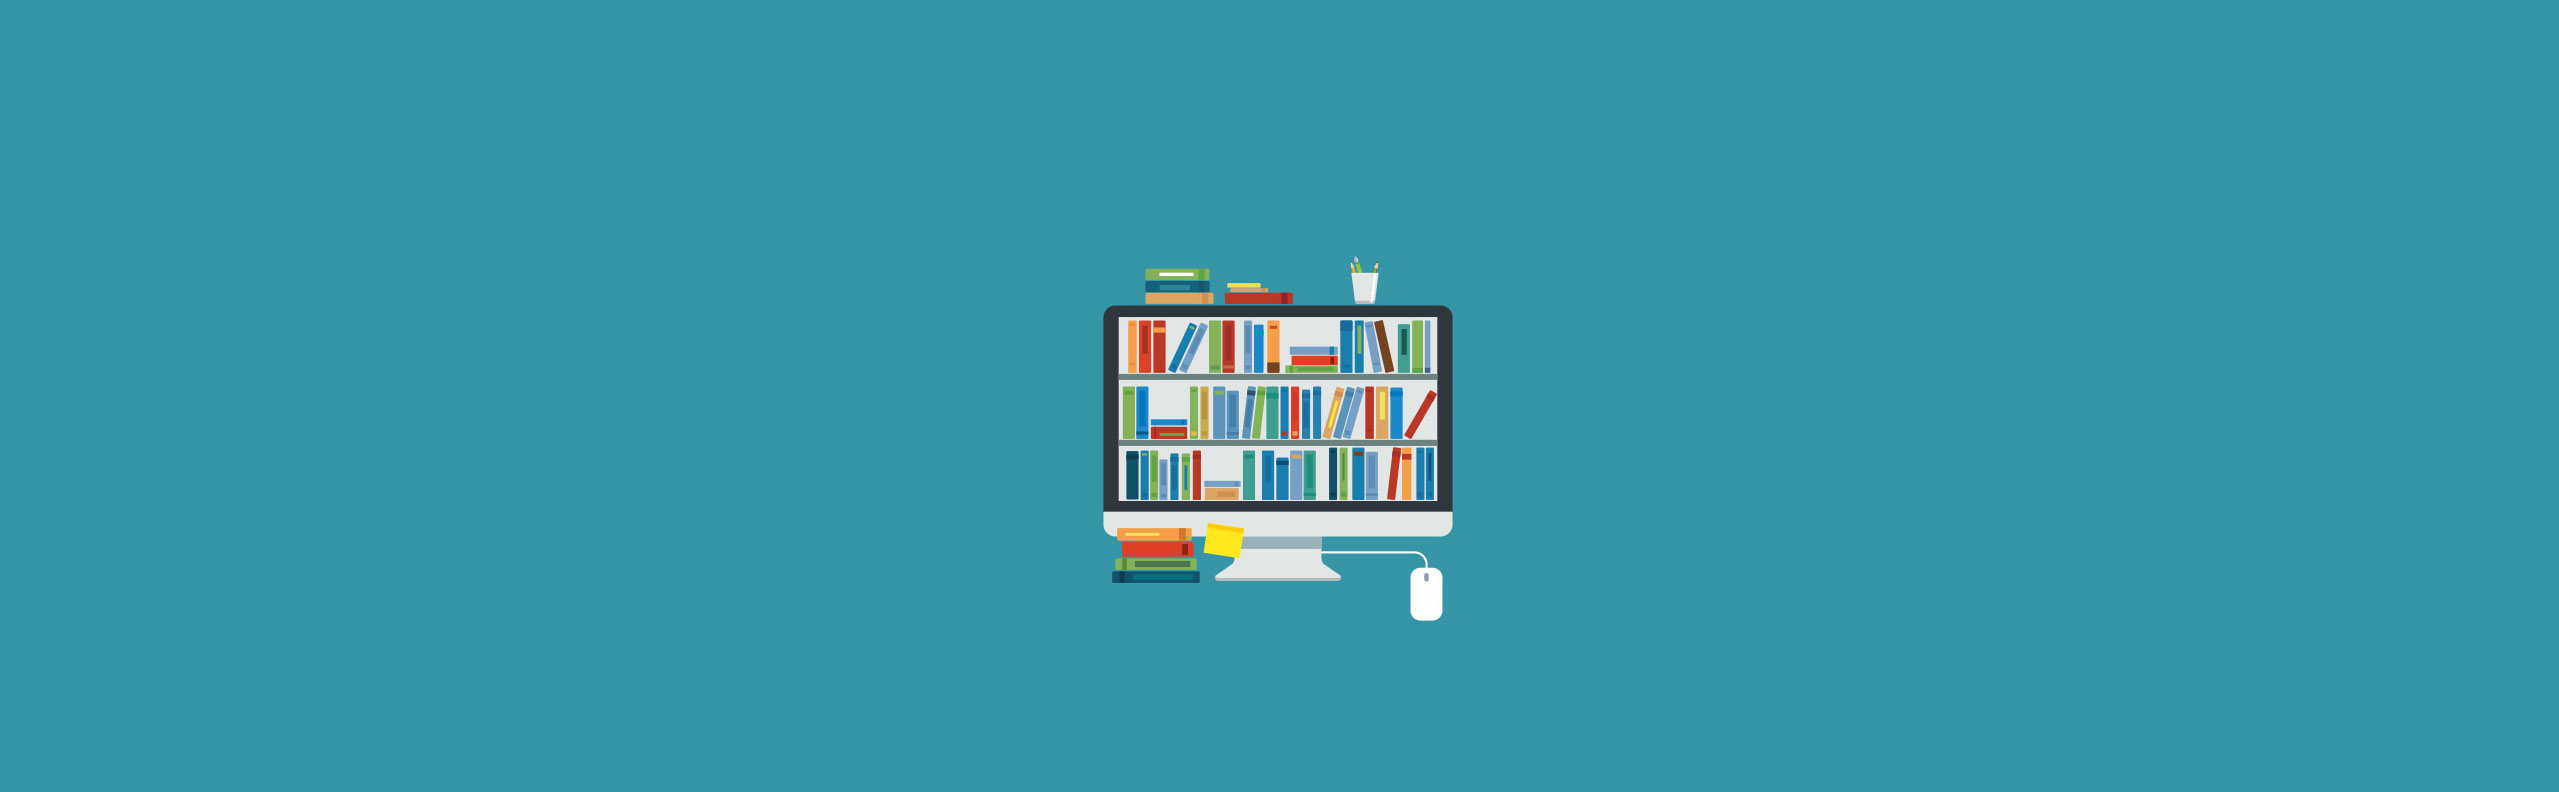 10 Excellent Books About Information Architecture